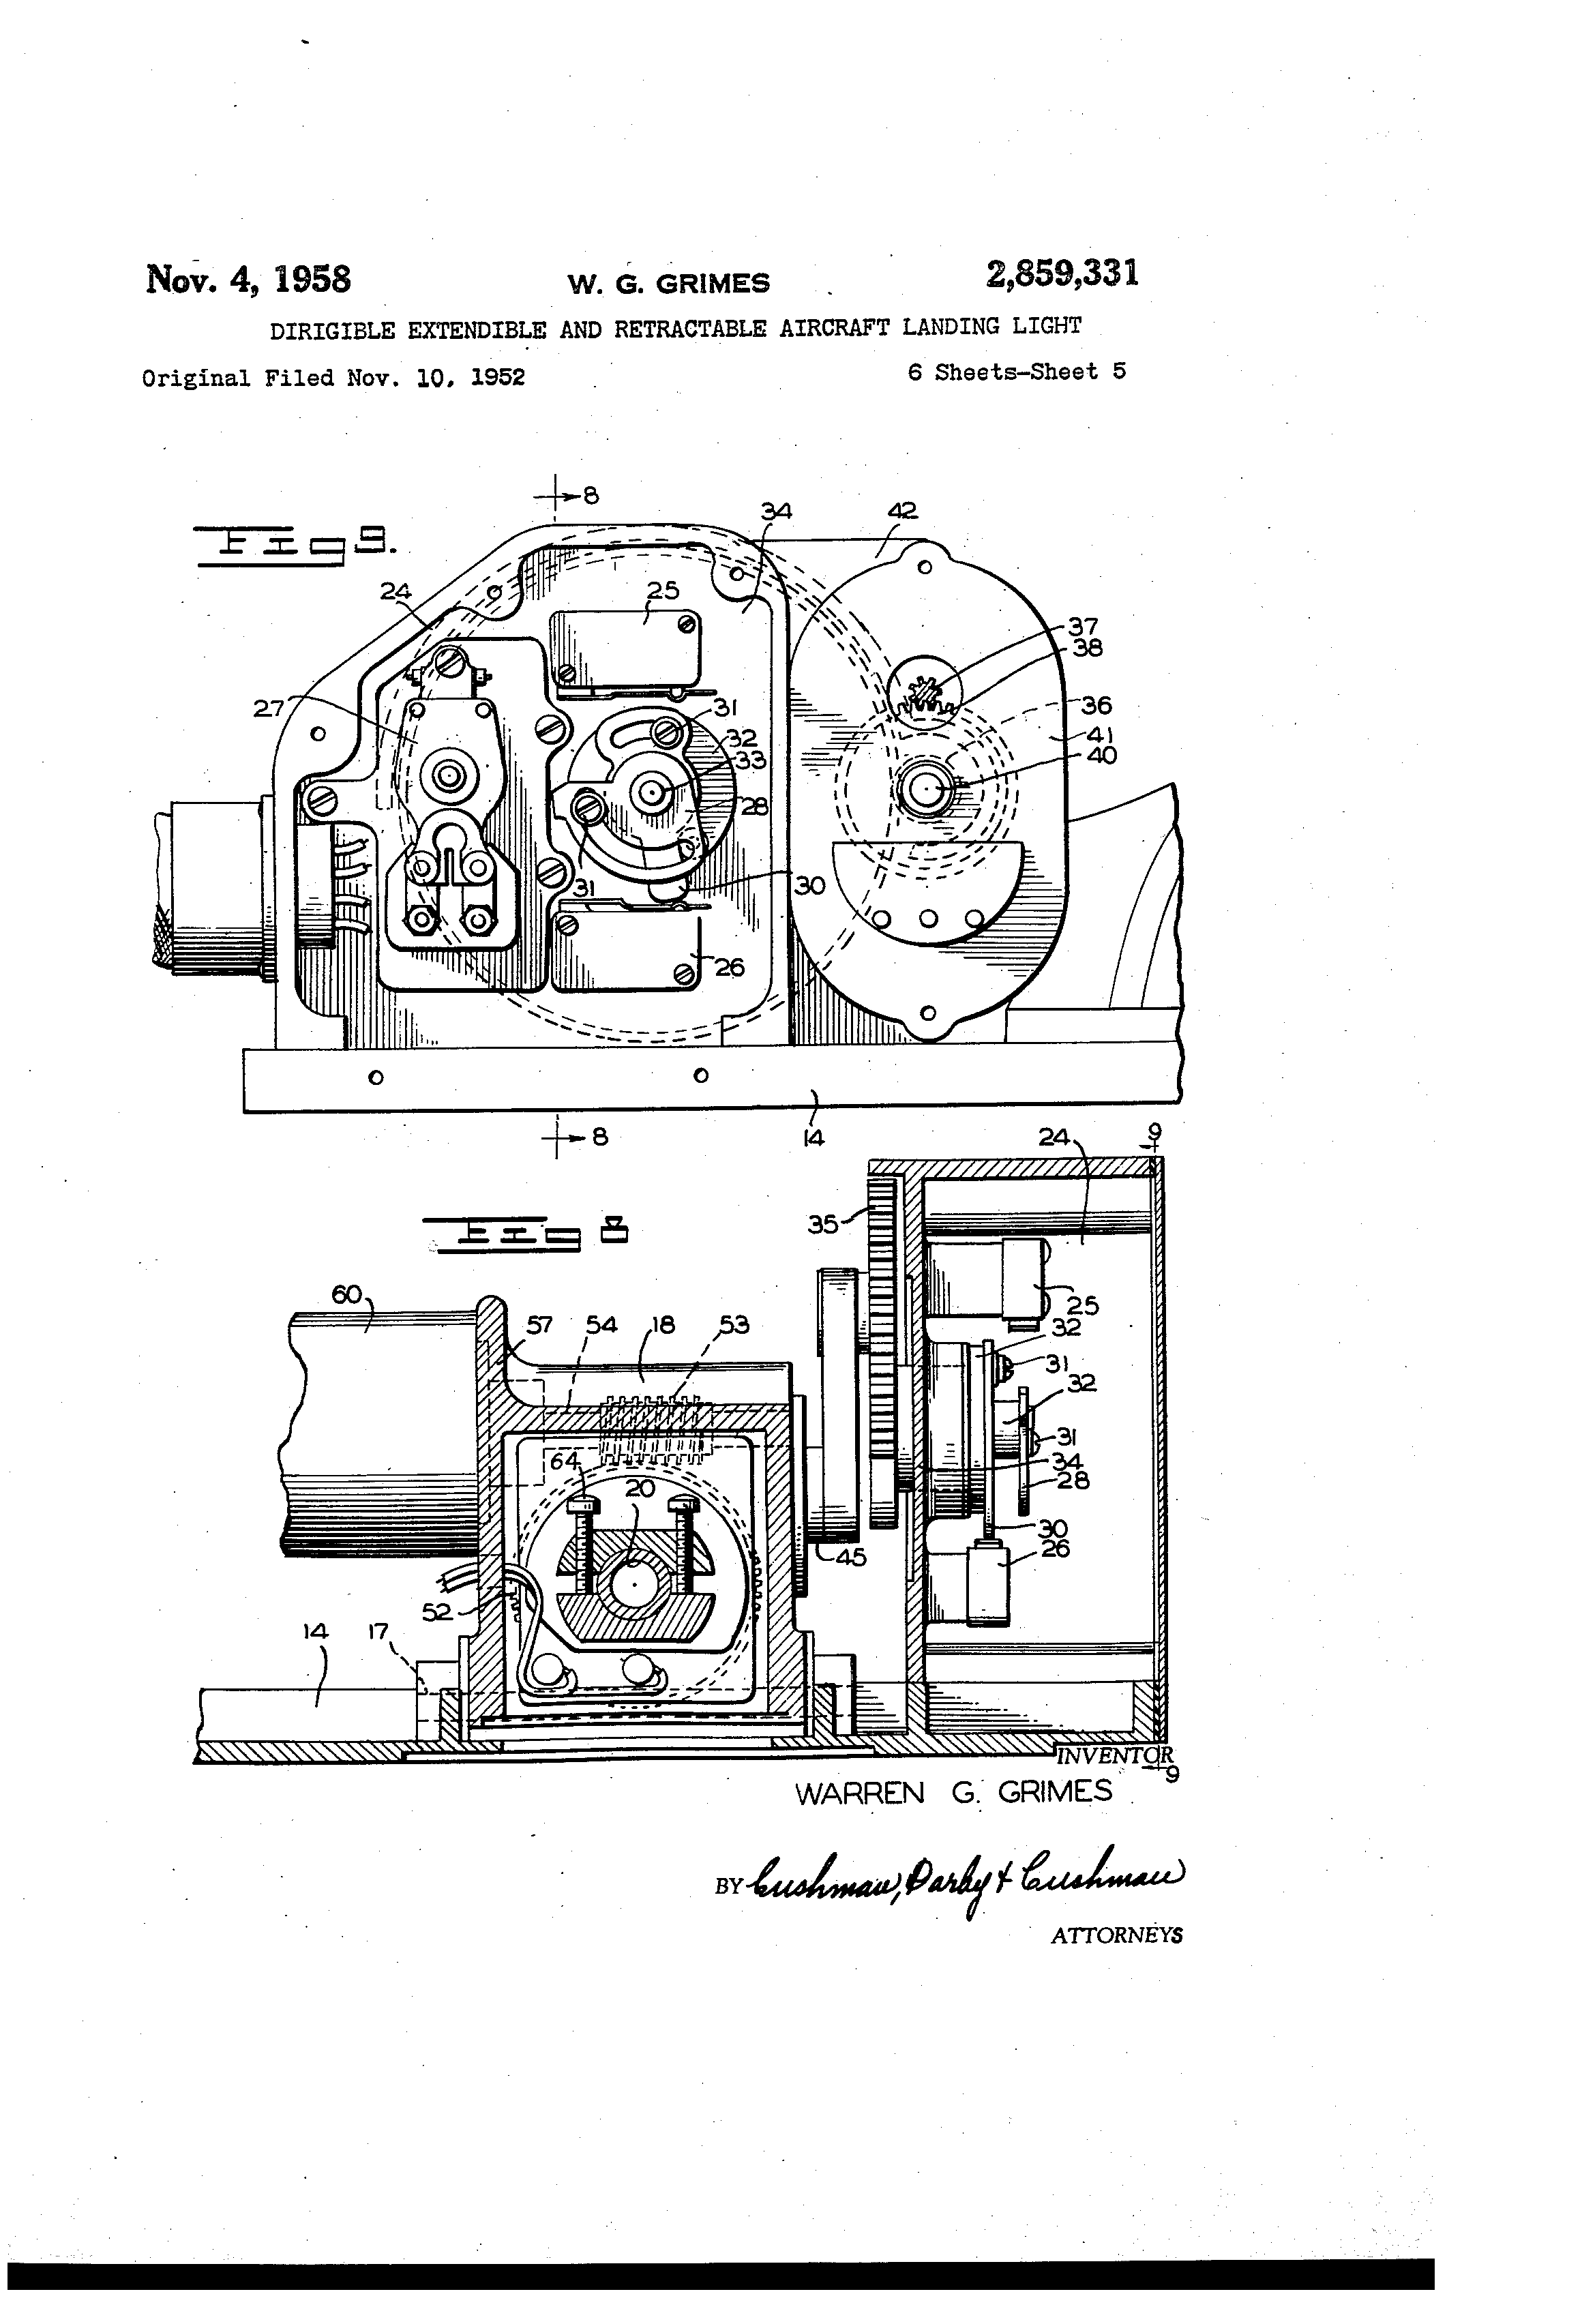 patent us2859331 - dirigible extendible and retractable aircraft landing light